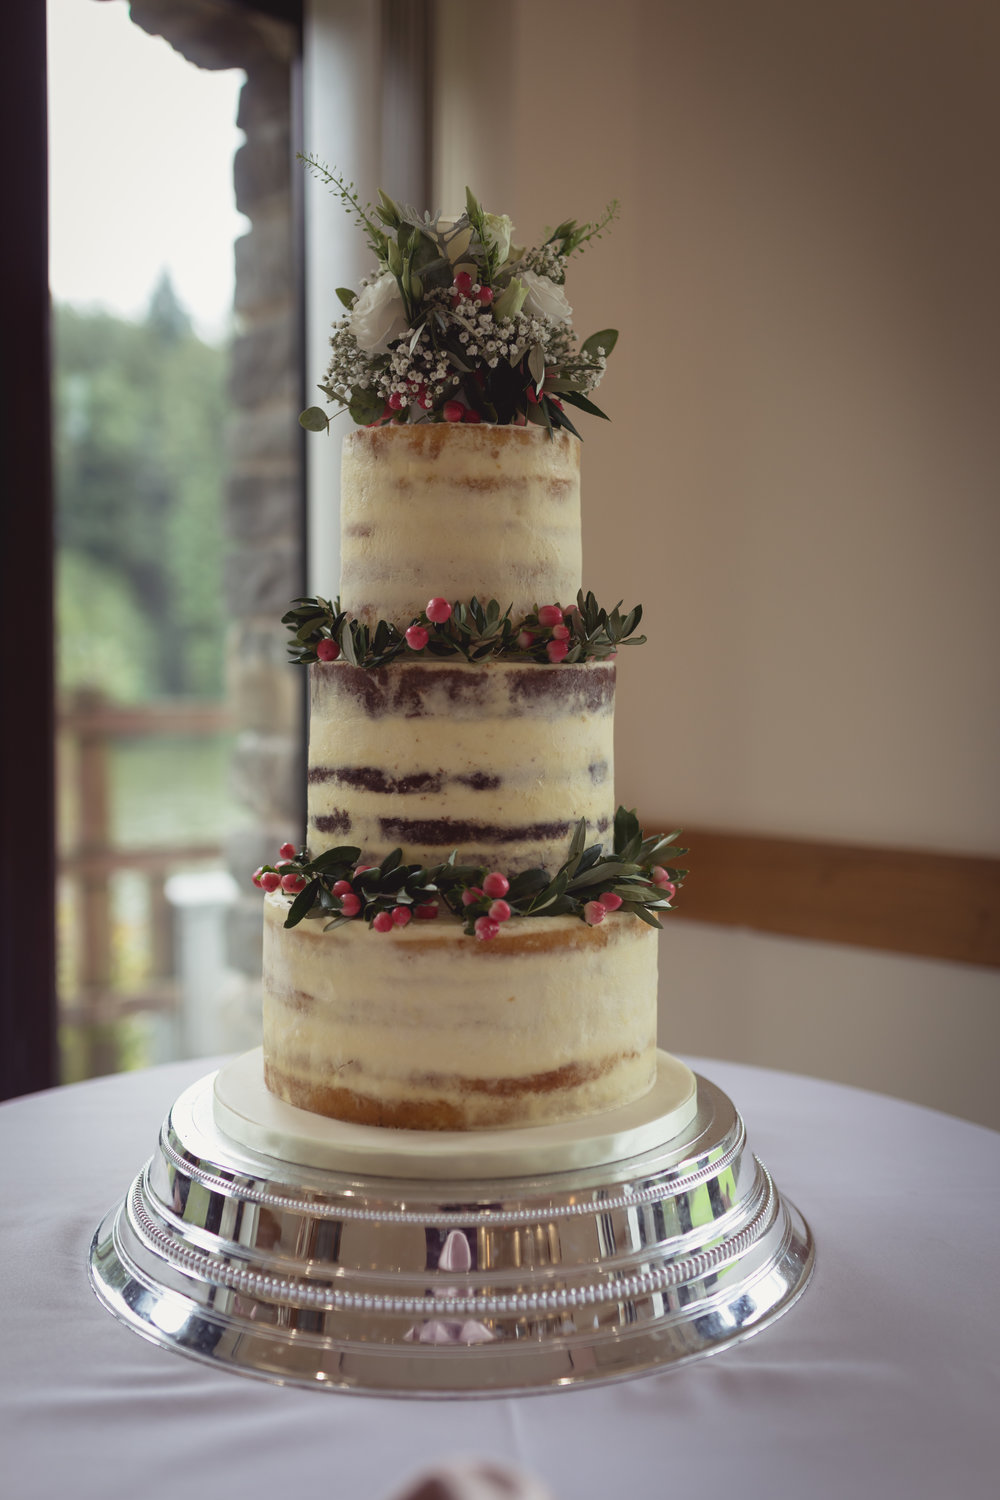 Photograph of a beautiful three tiered wedding cake